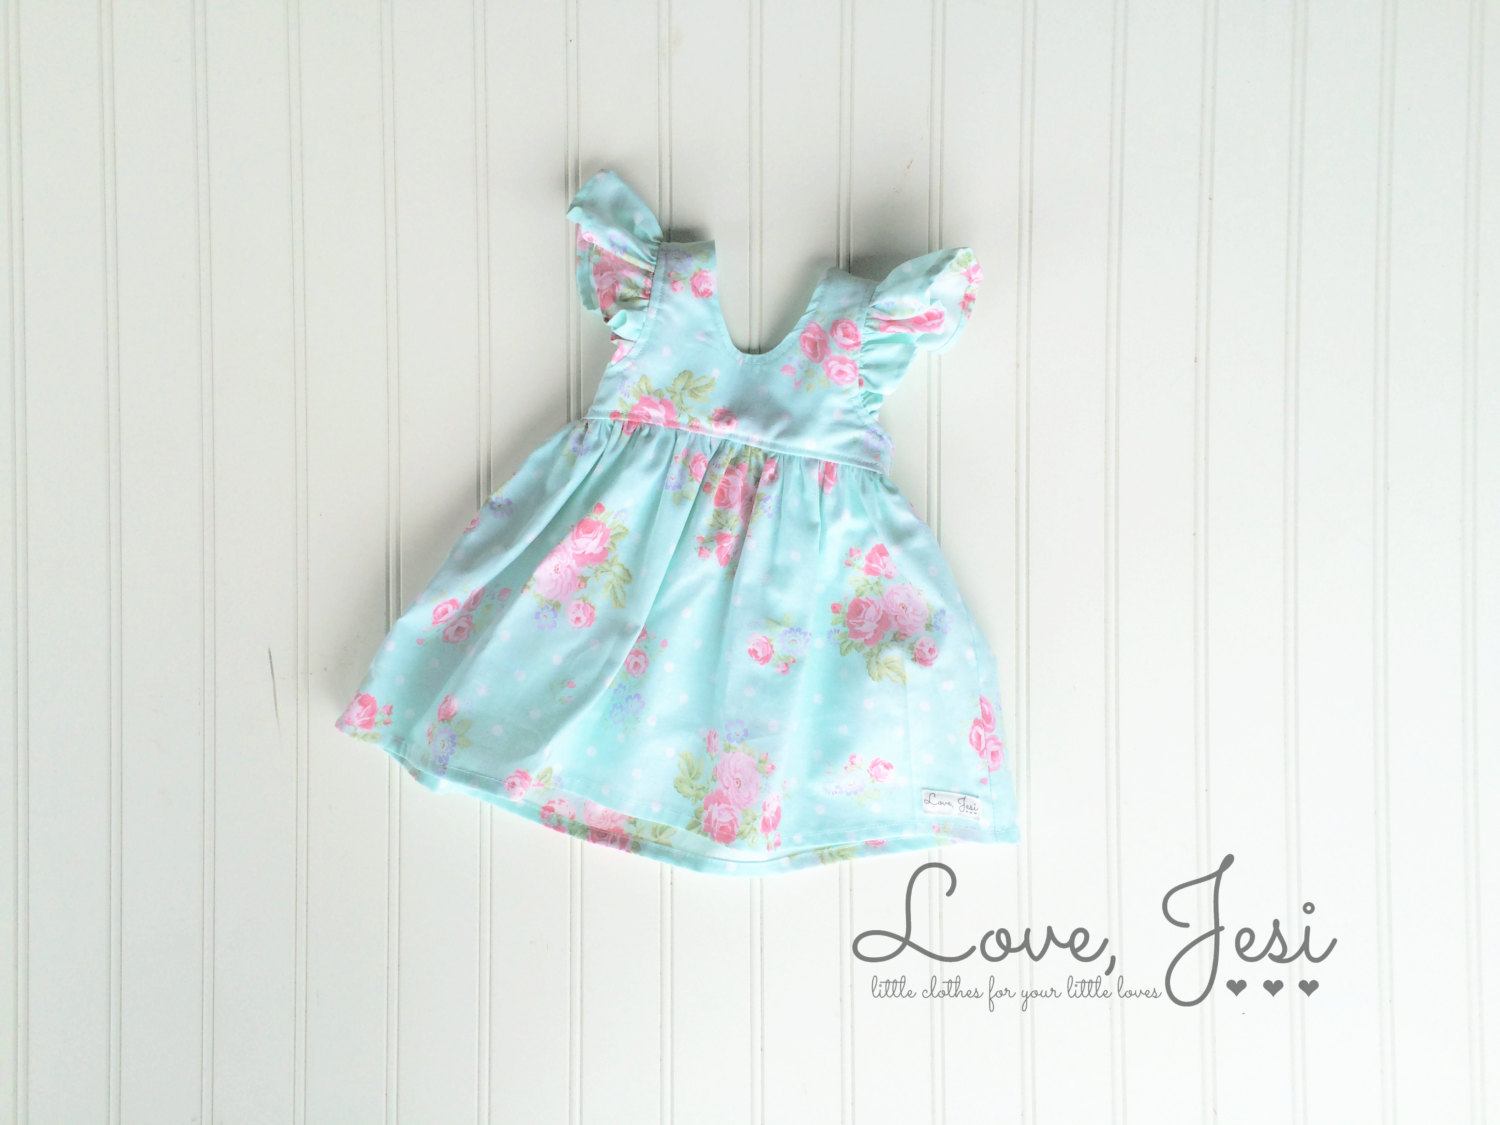 Gown clipart baby dress Girls Dresses Spring Etsy Clothes